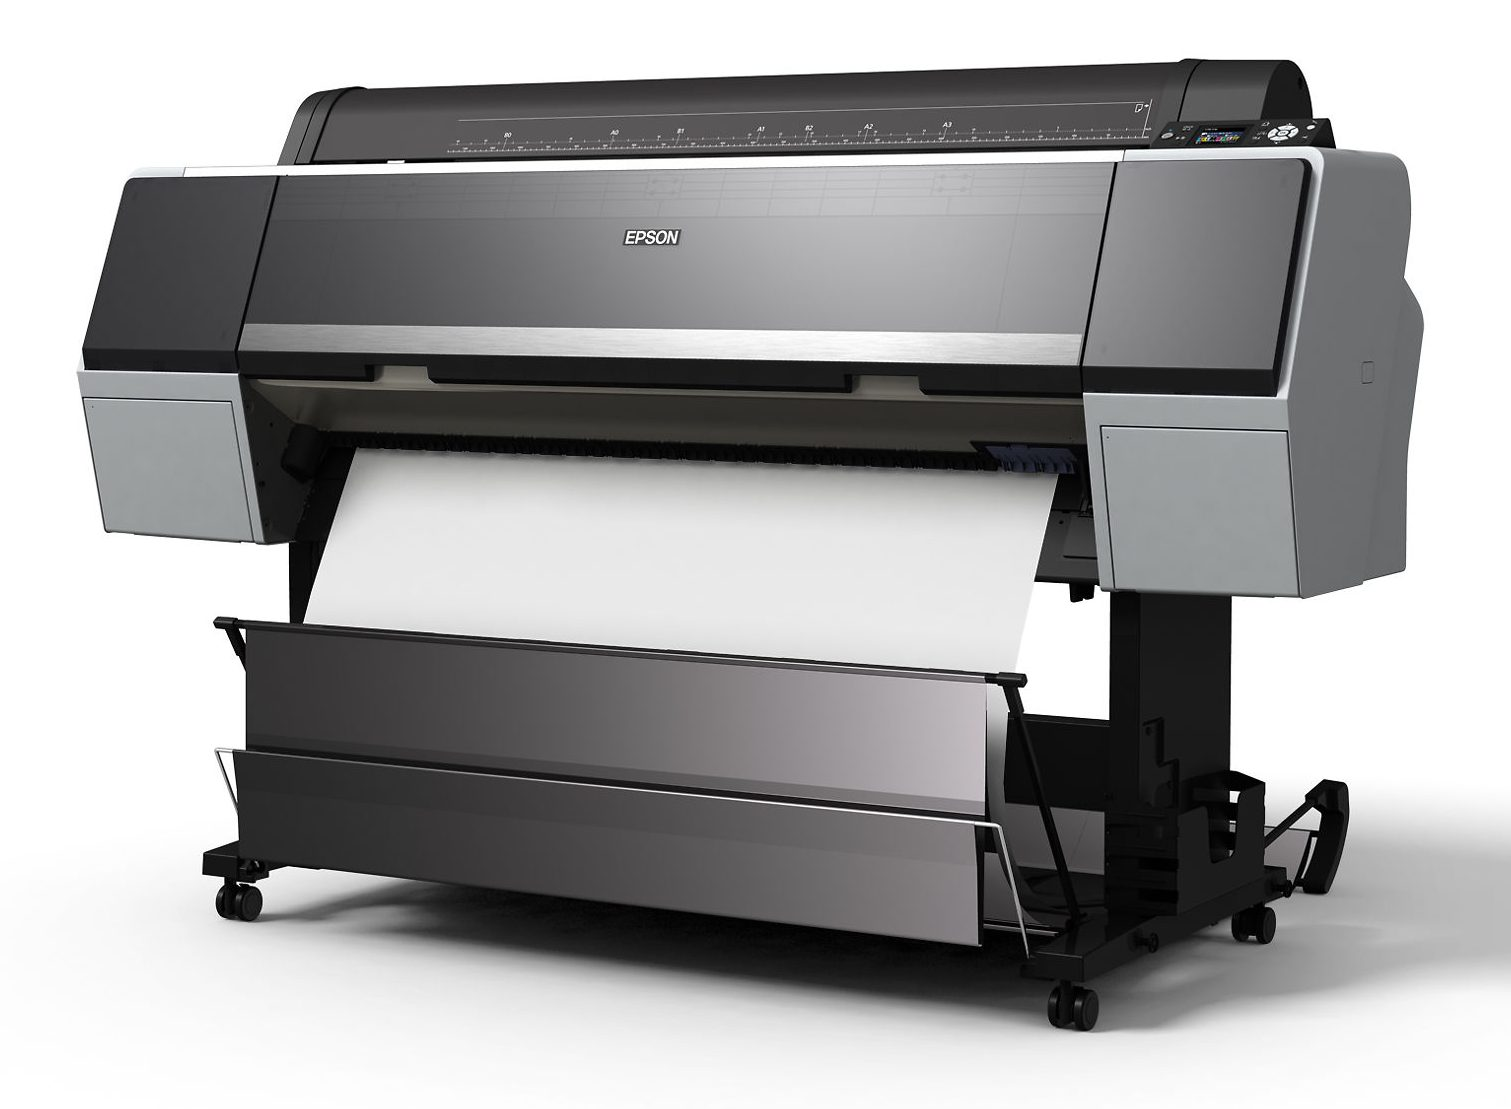 Wide Epson Printer Order Form